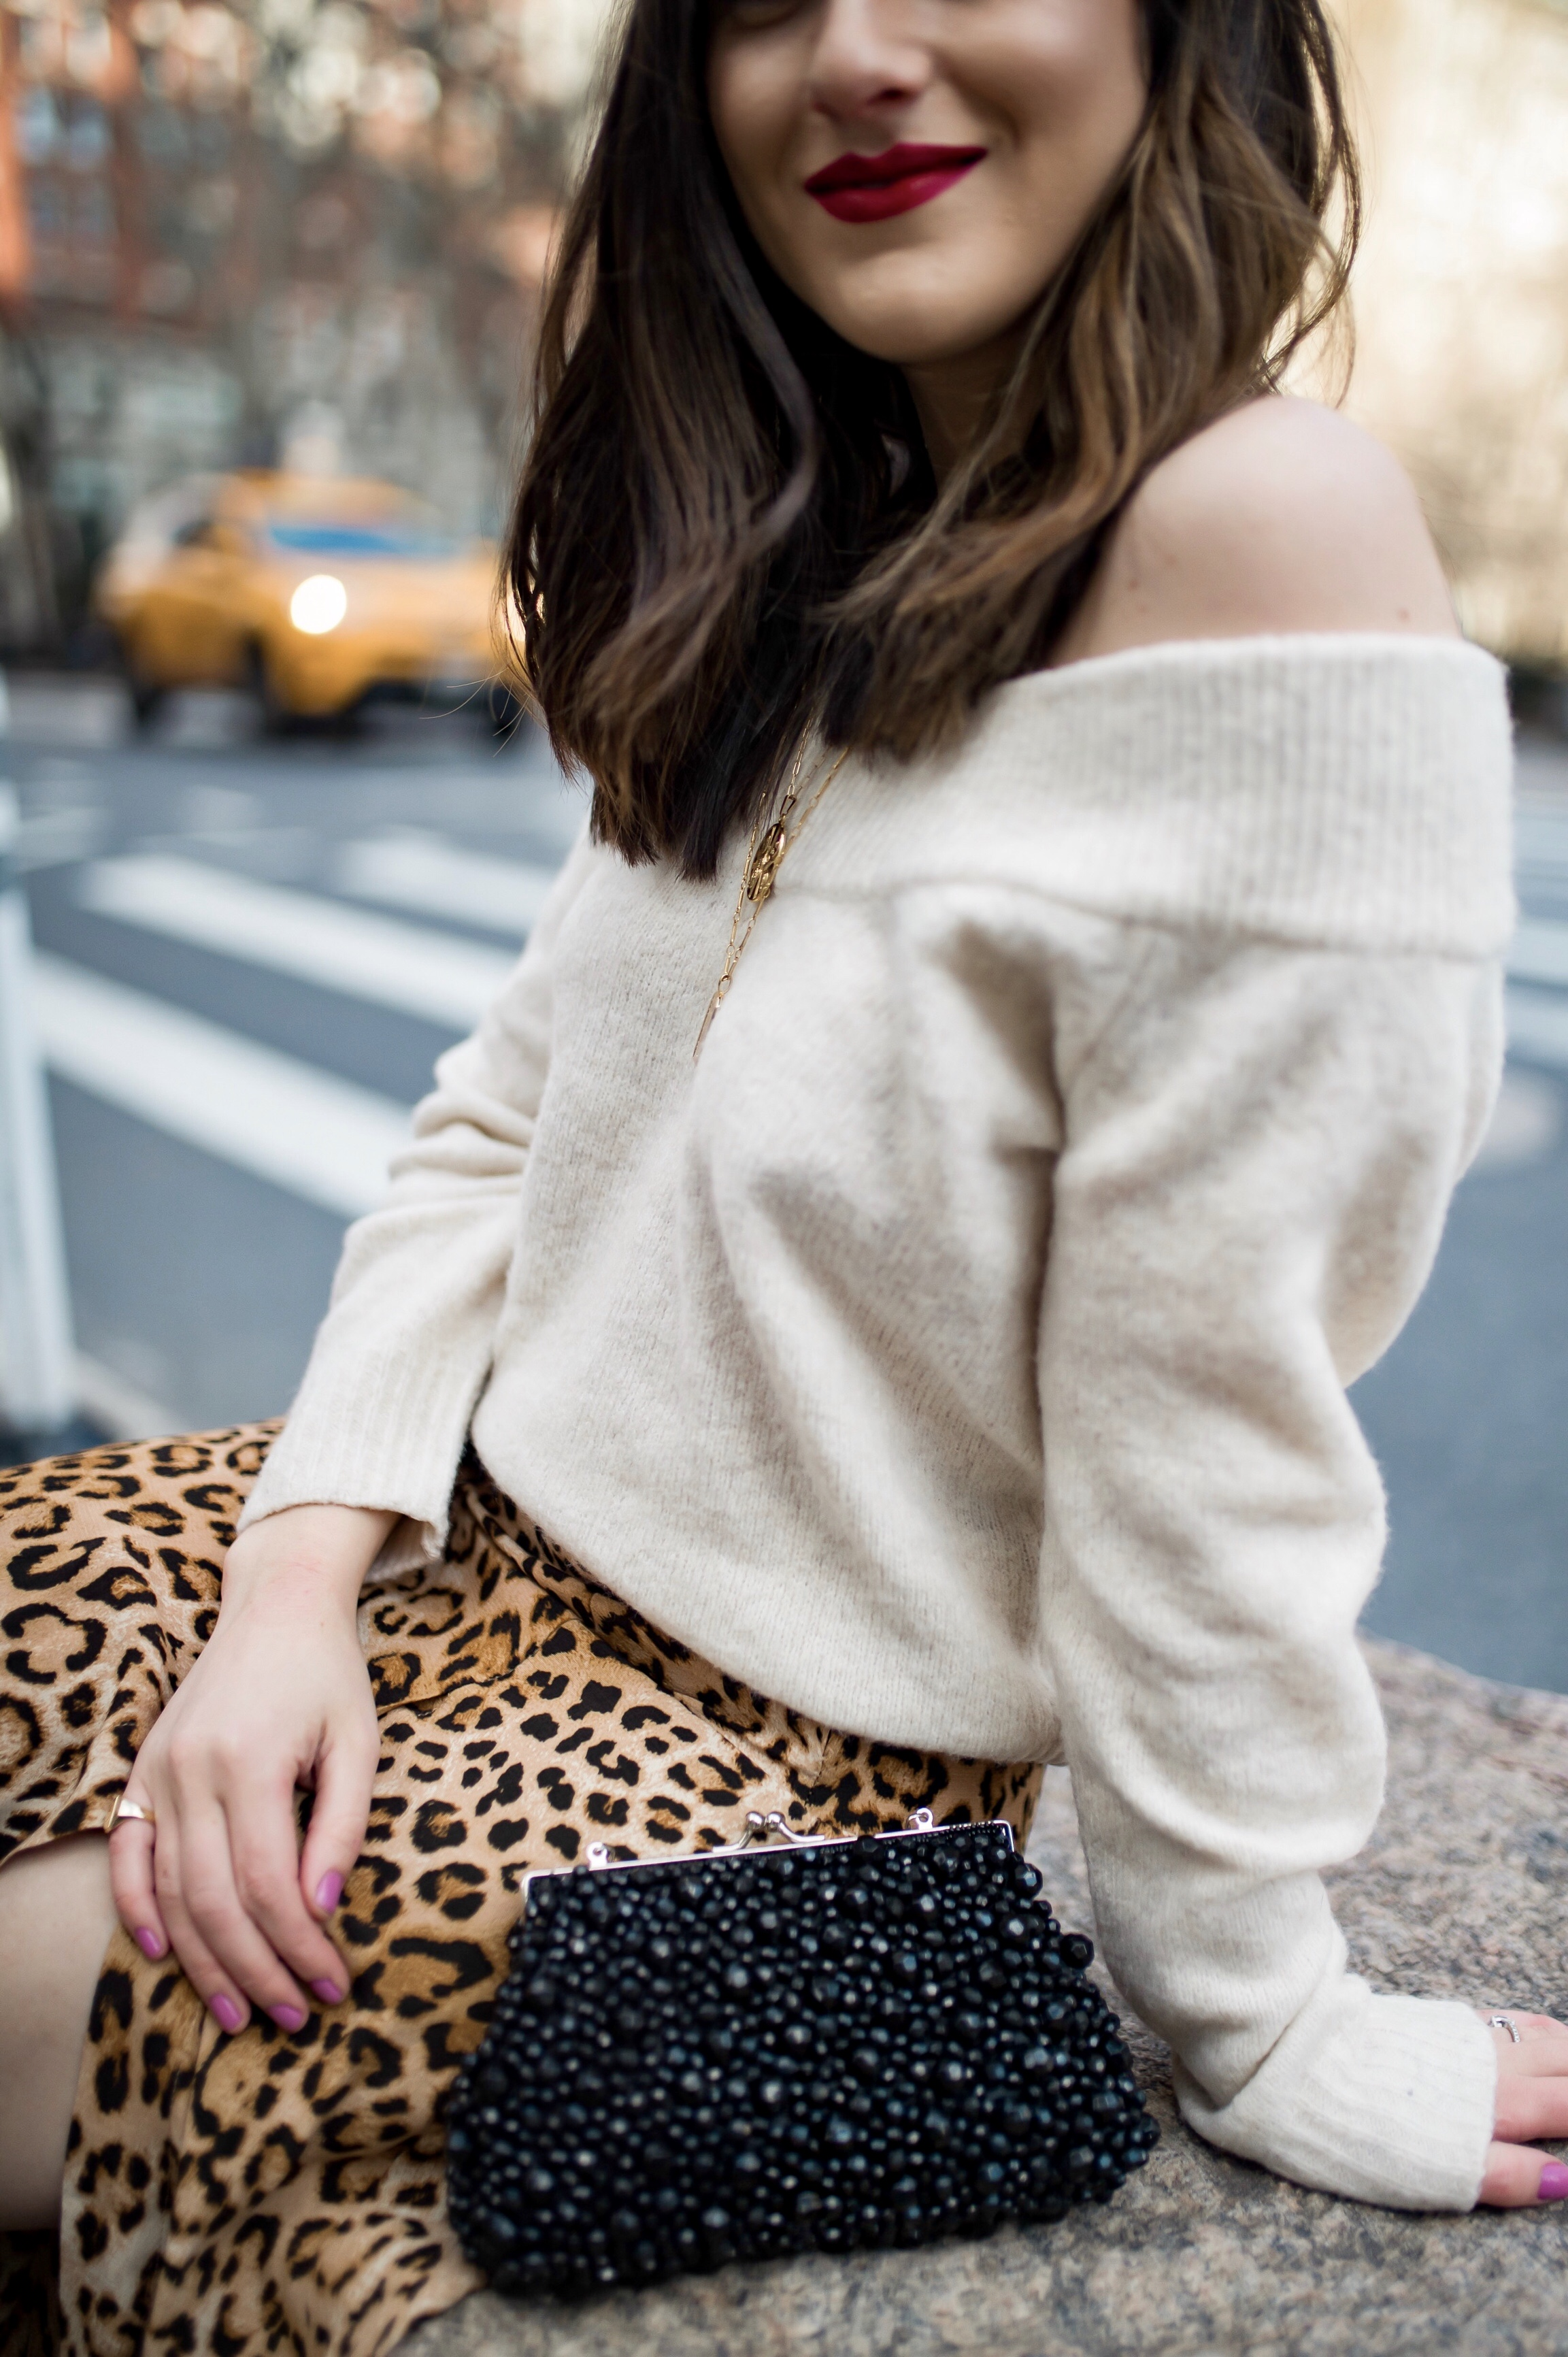 The Instagram Likes Debate Leopard Midi Skirt Beige Sweater Esther Santer Fashion Blog NYC Street Style Blogger Outfit OOTD Trendy Shopping Girl What Wear H&M Zara Pearl Barrettes Hair Clips Accessories Beaded Clutch Spring Necklaces Bag Sandals Mules.jpg